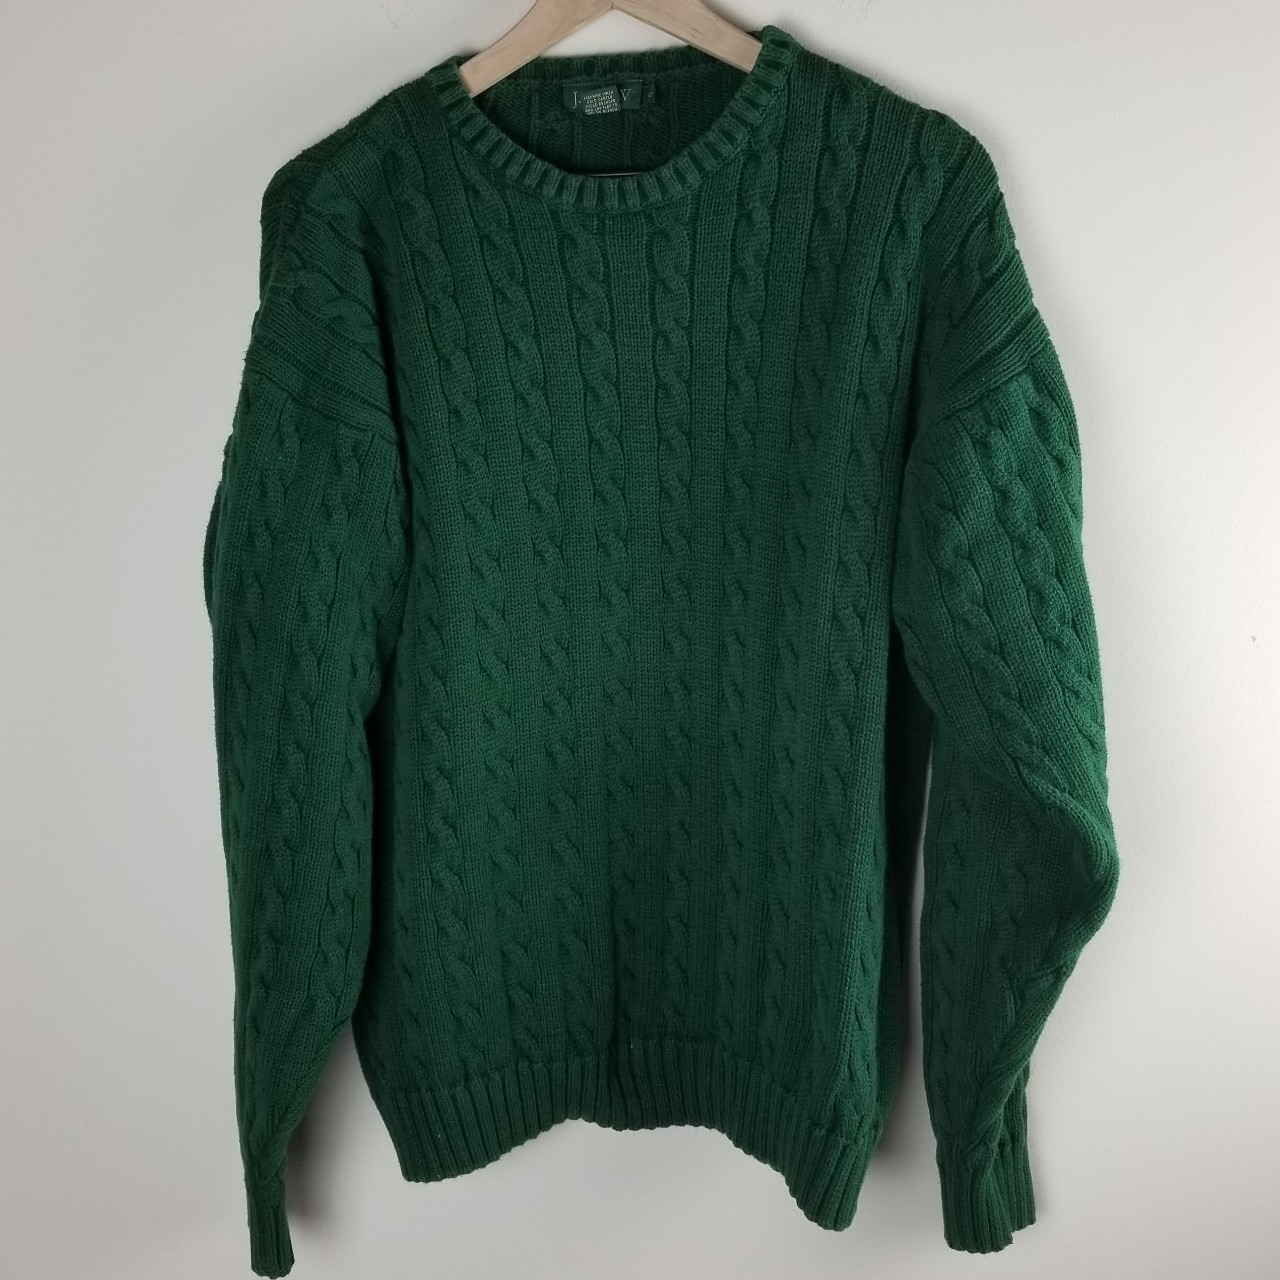 Forest green knit sweater